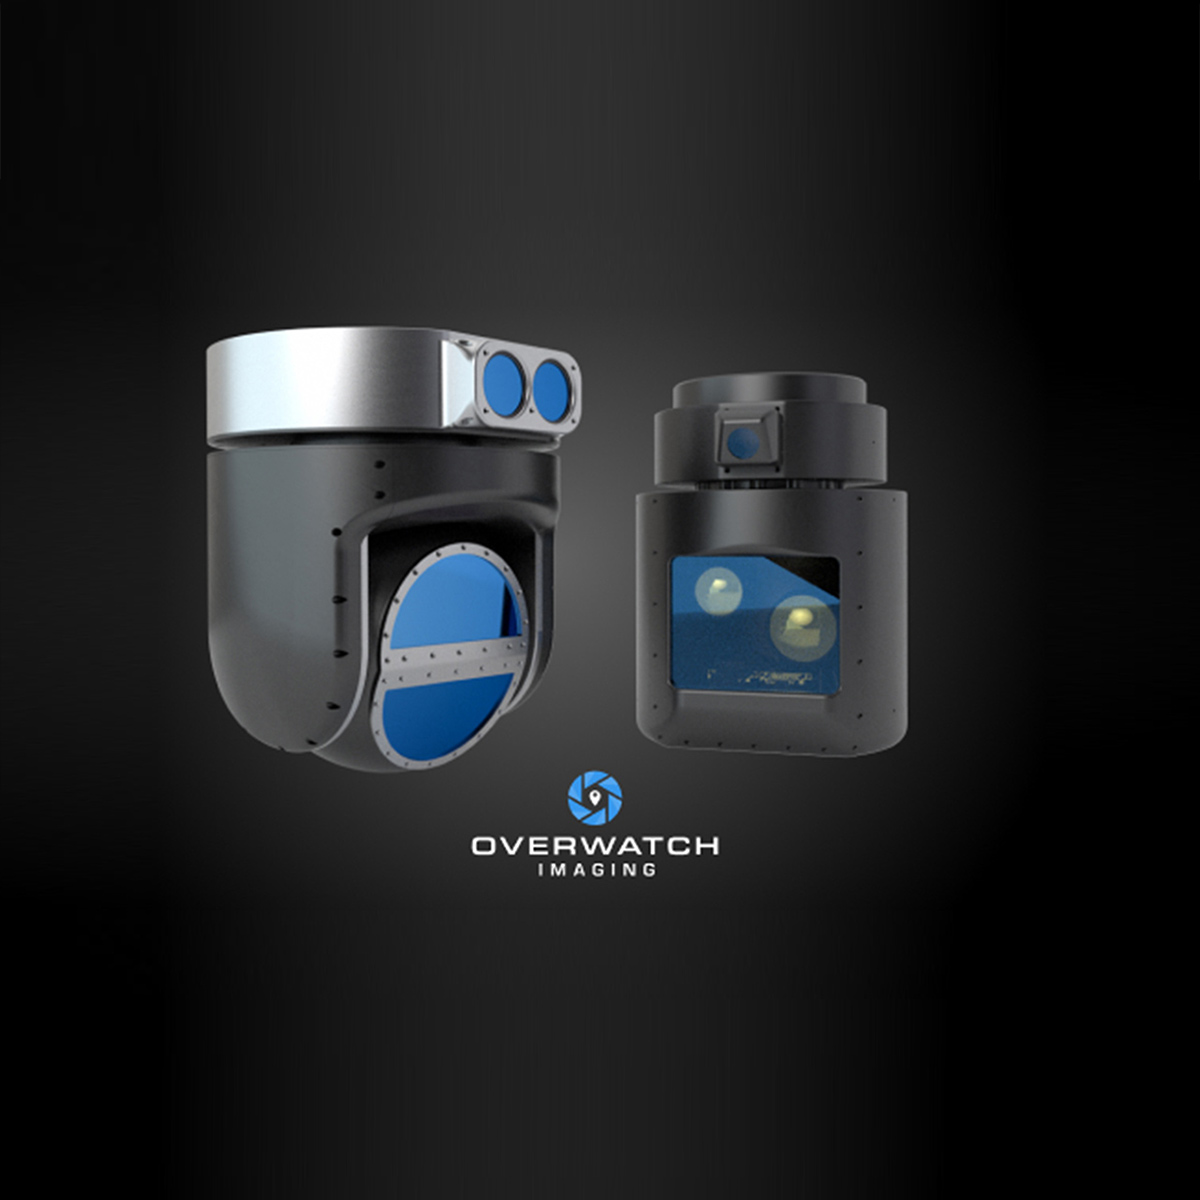 overwatch imaging products a